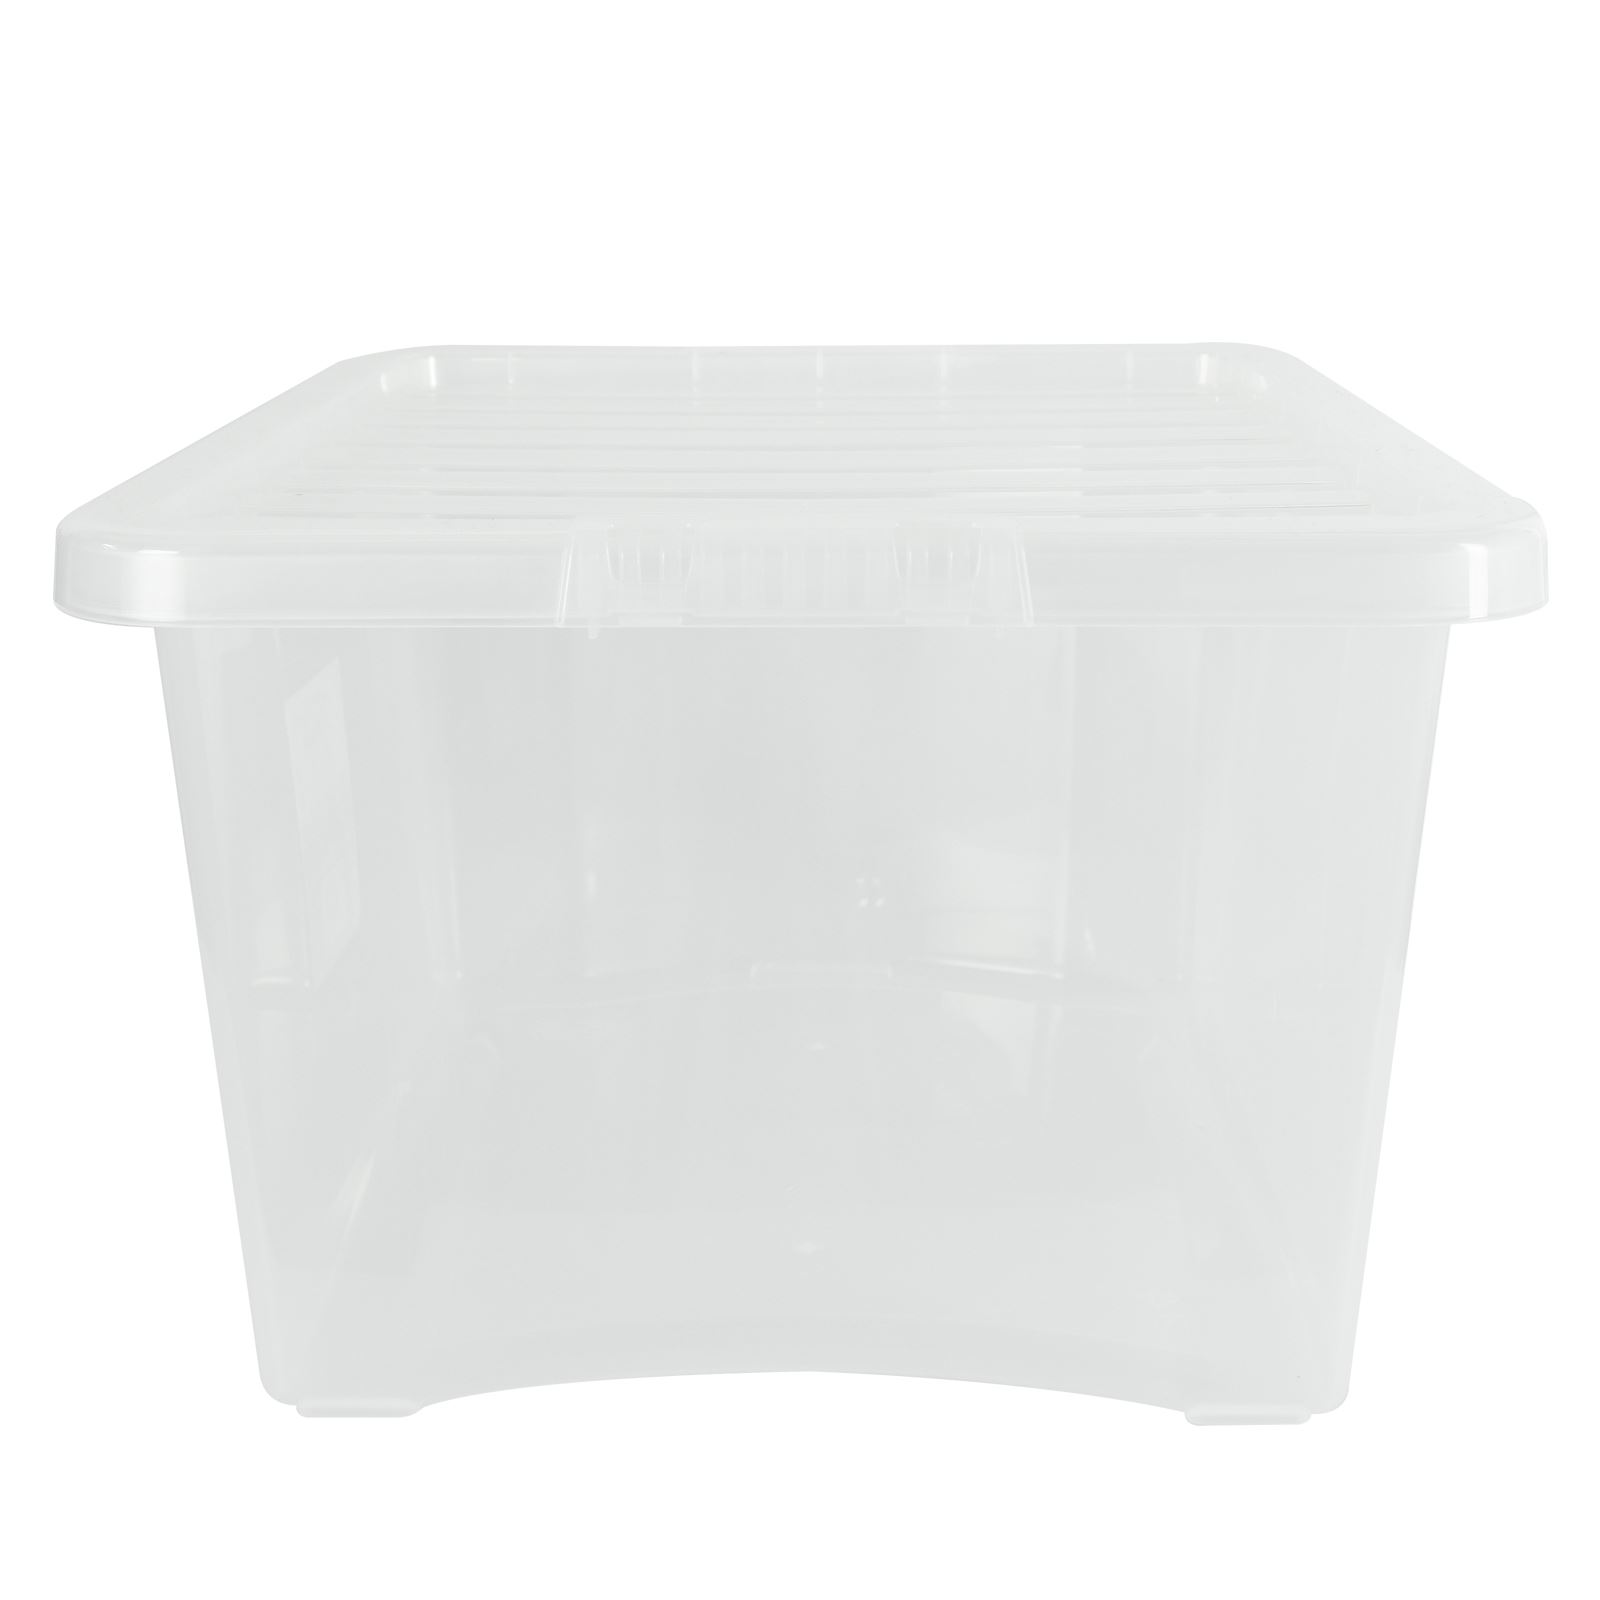 Wham-Crystal-Clear-Plastic-Storage-Box-Secure-Clip-on-Lid-Under-Bed-Space-Save thumbnail 14